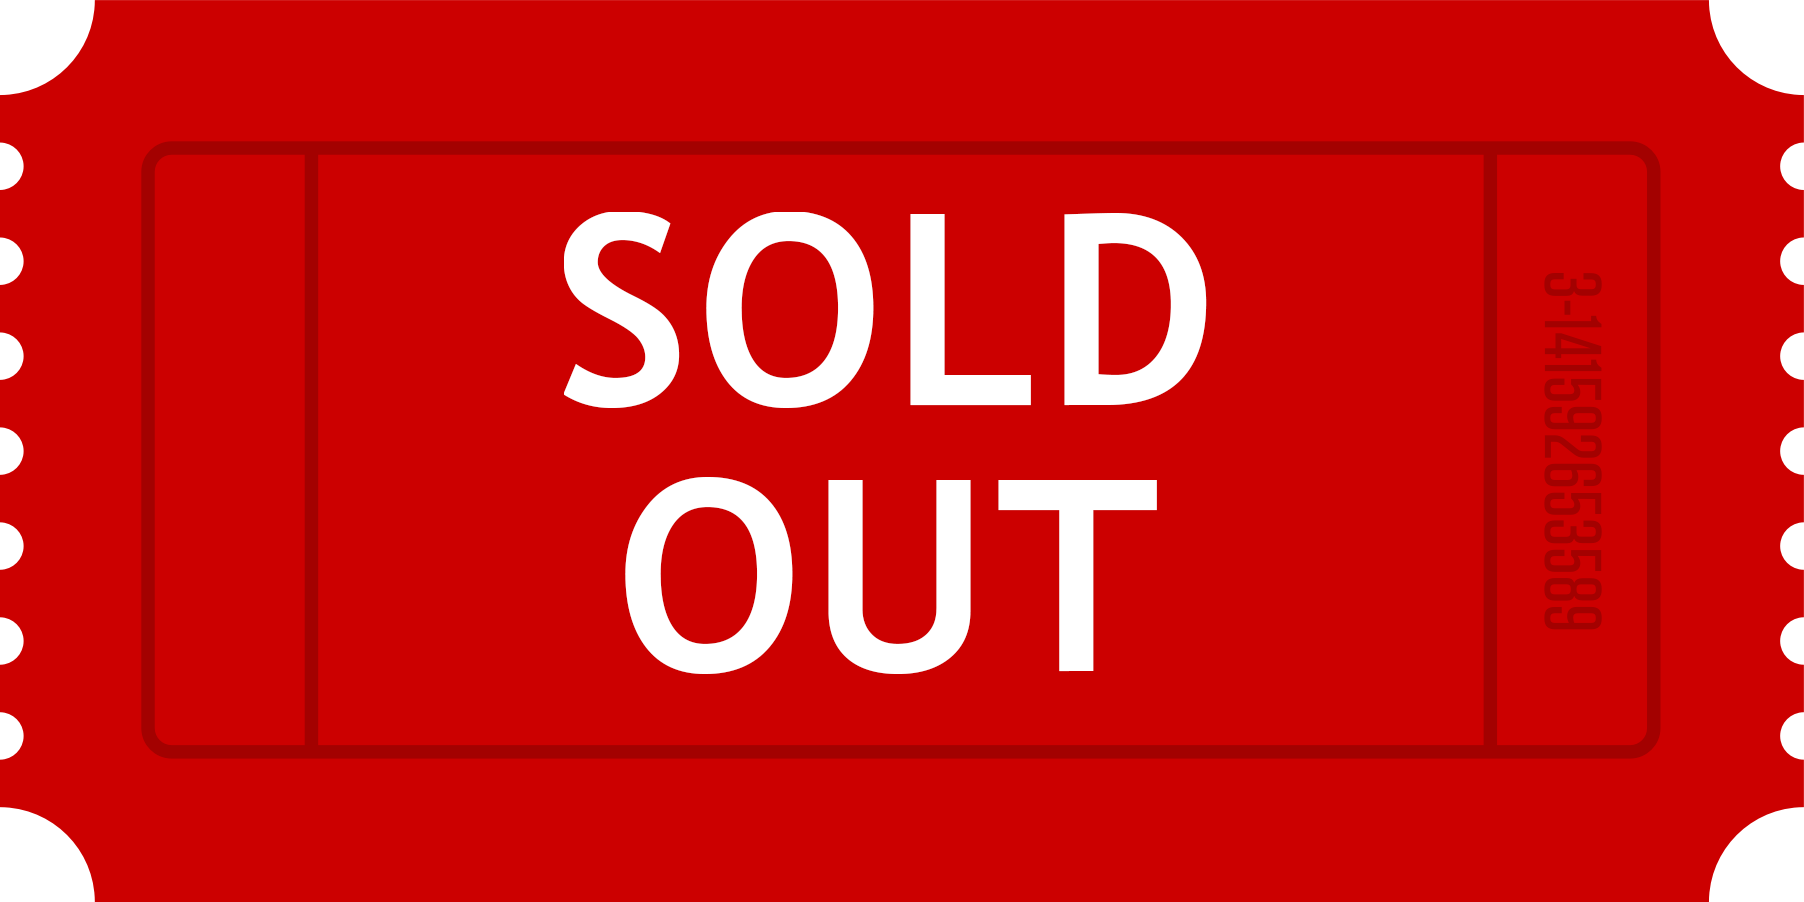 Tkts sold out